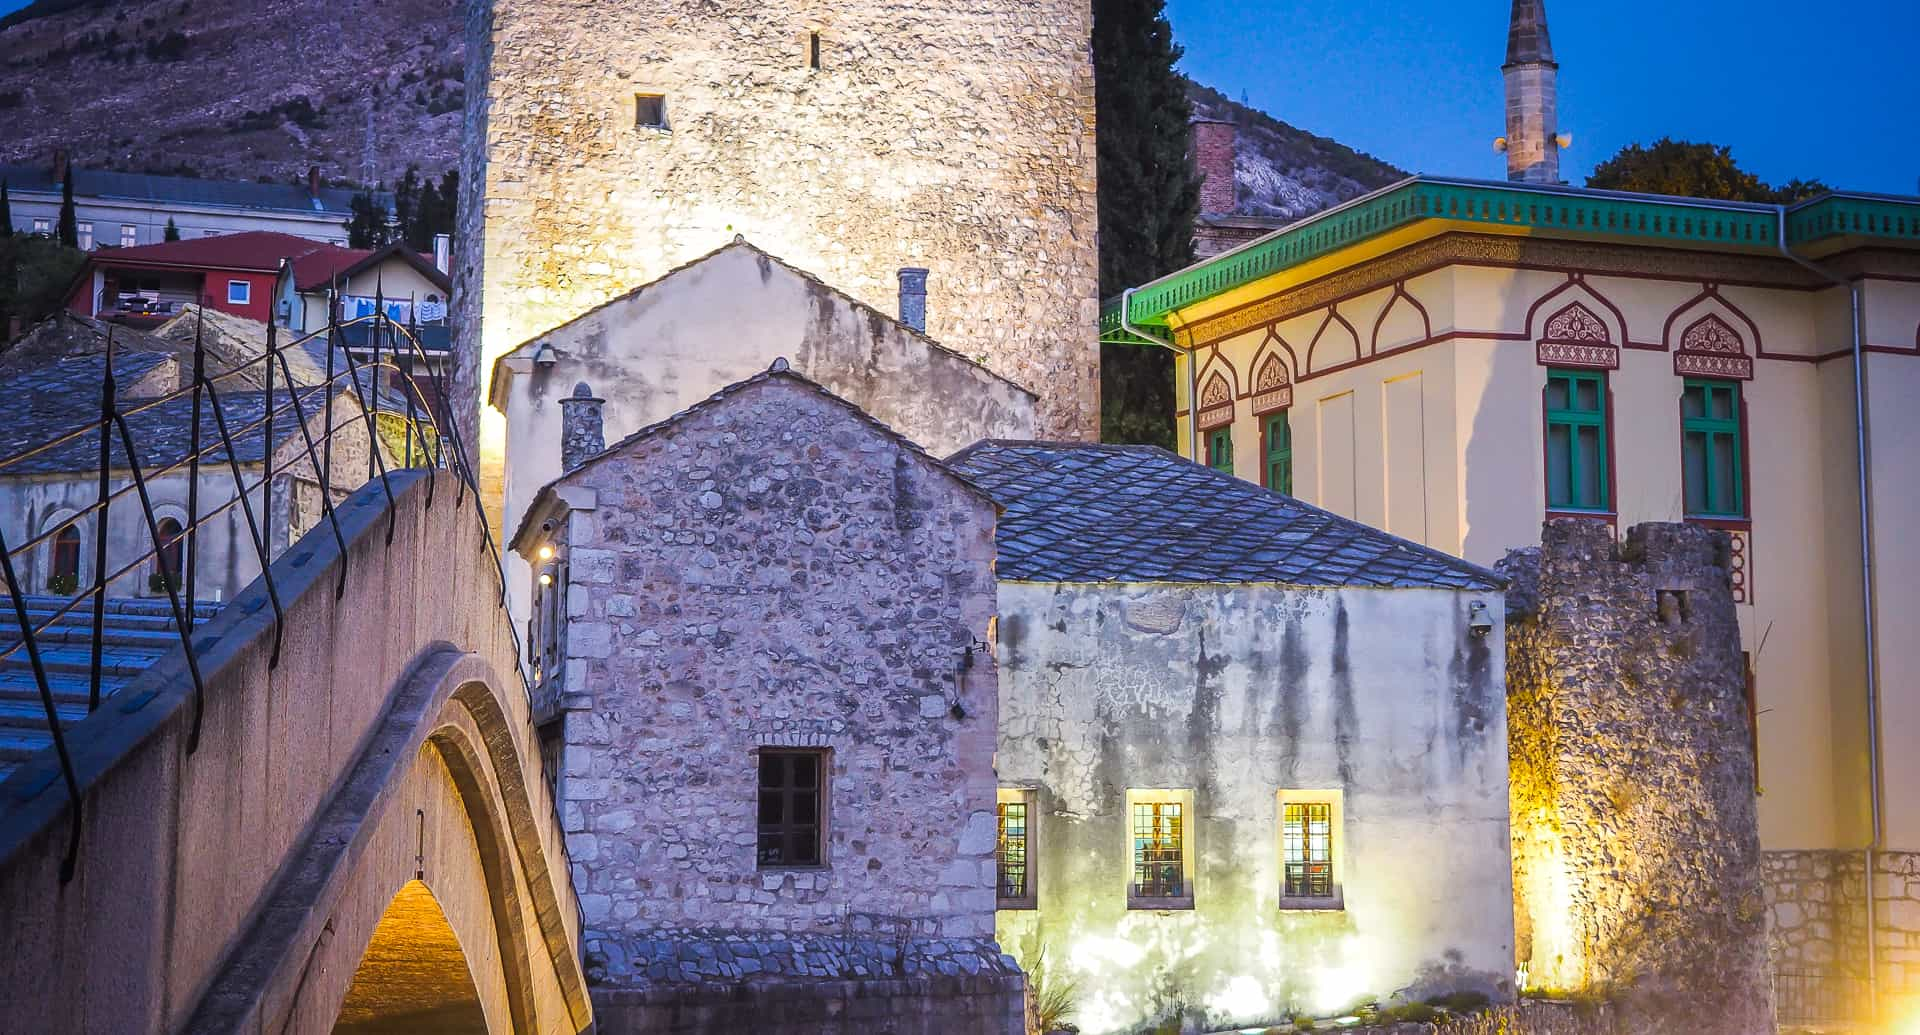 A detailed Mostar guide, including 15 things to do in Mostar and 5 Mostar day trips